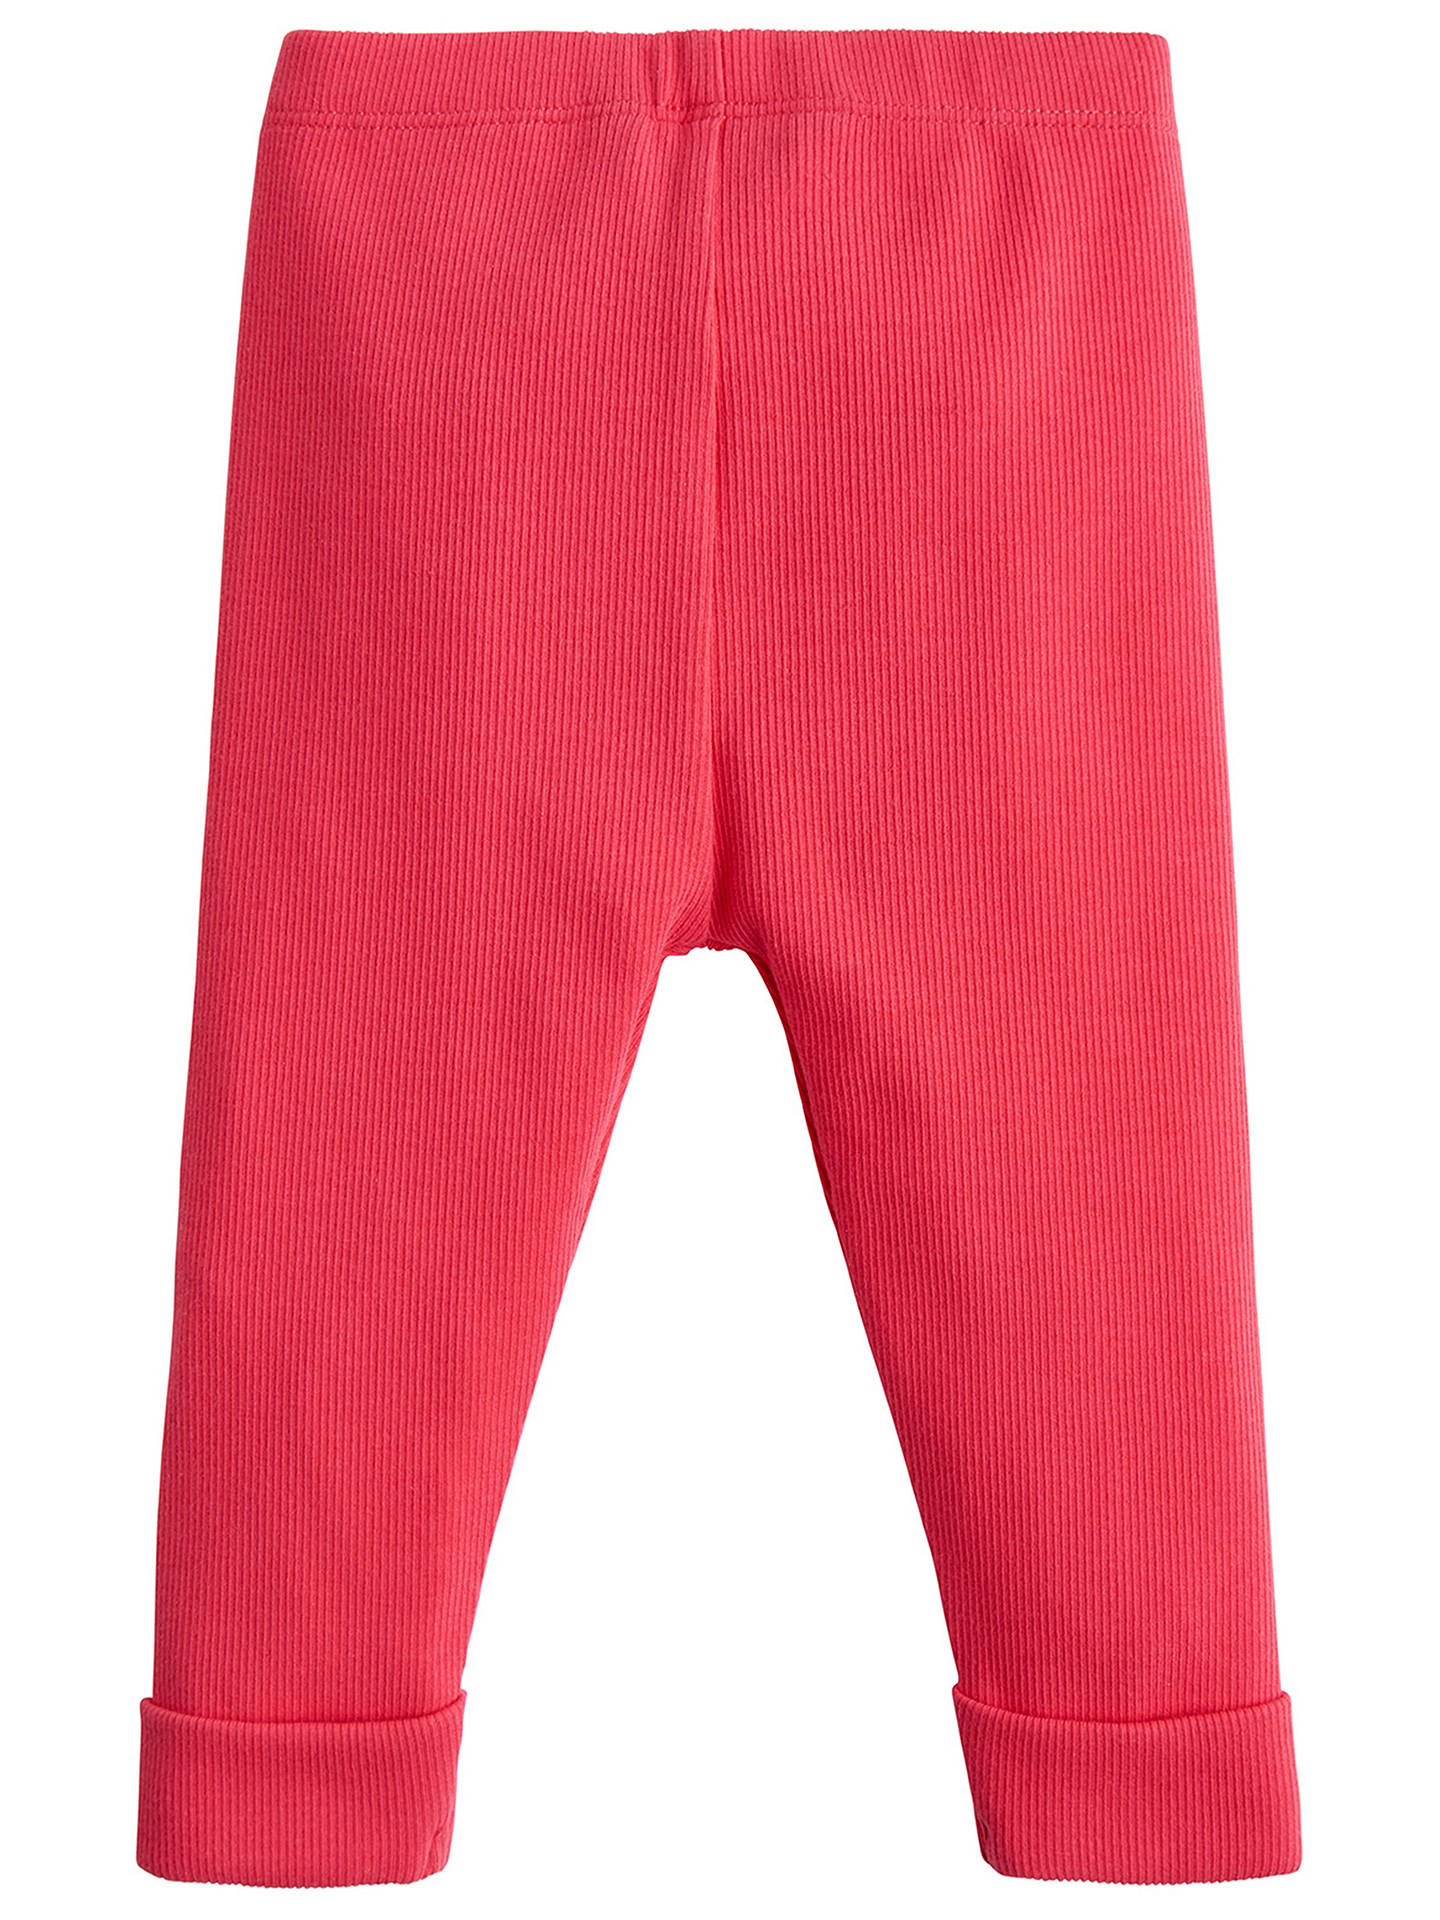 BuyBaby Joules Lula Leggings, Pink, 0-3 months Online at johnlewis.com